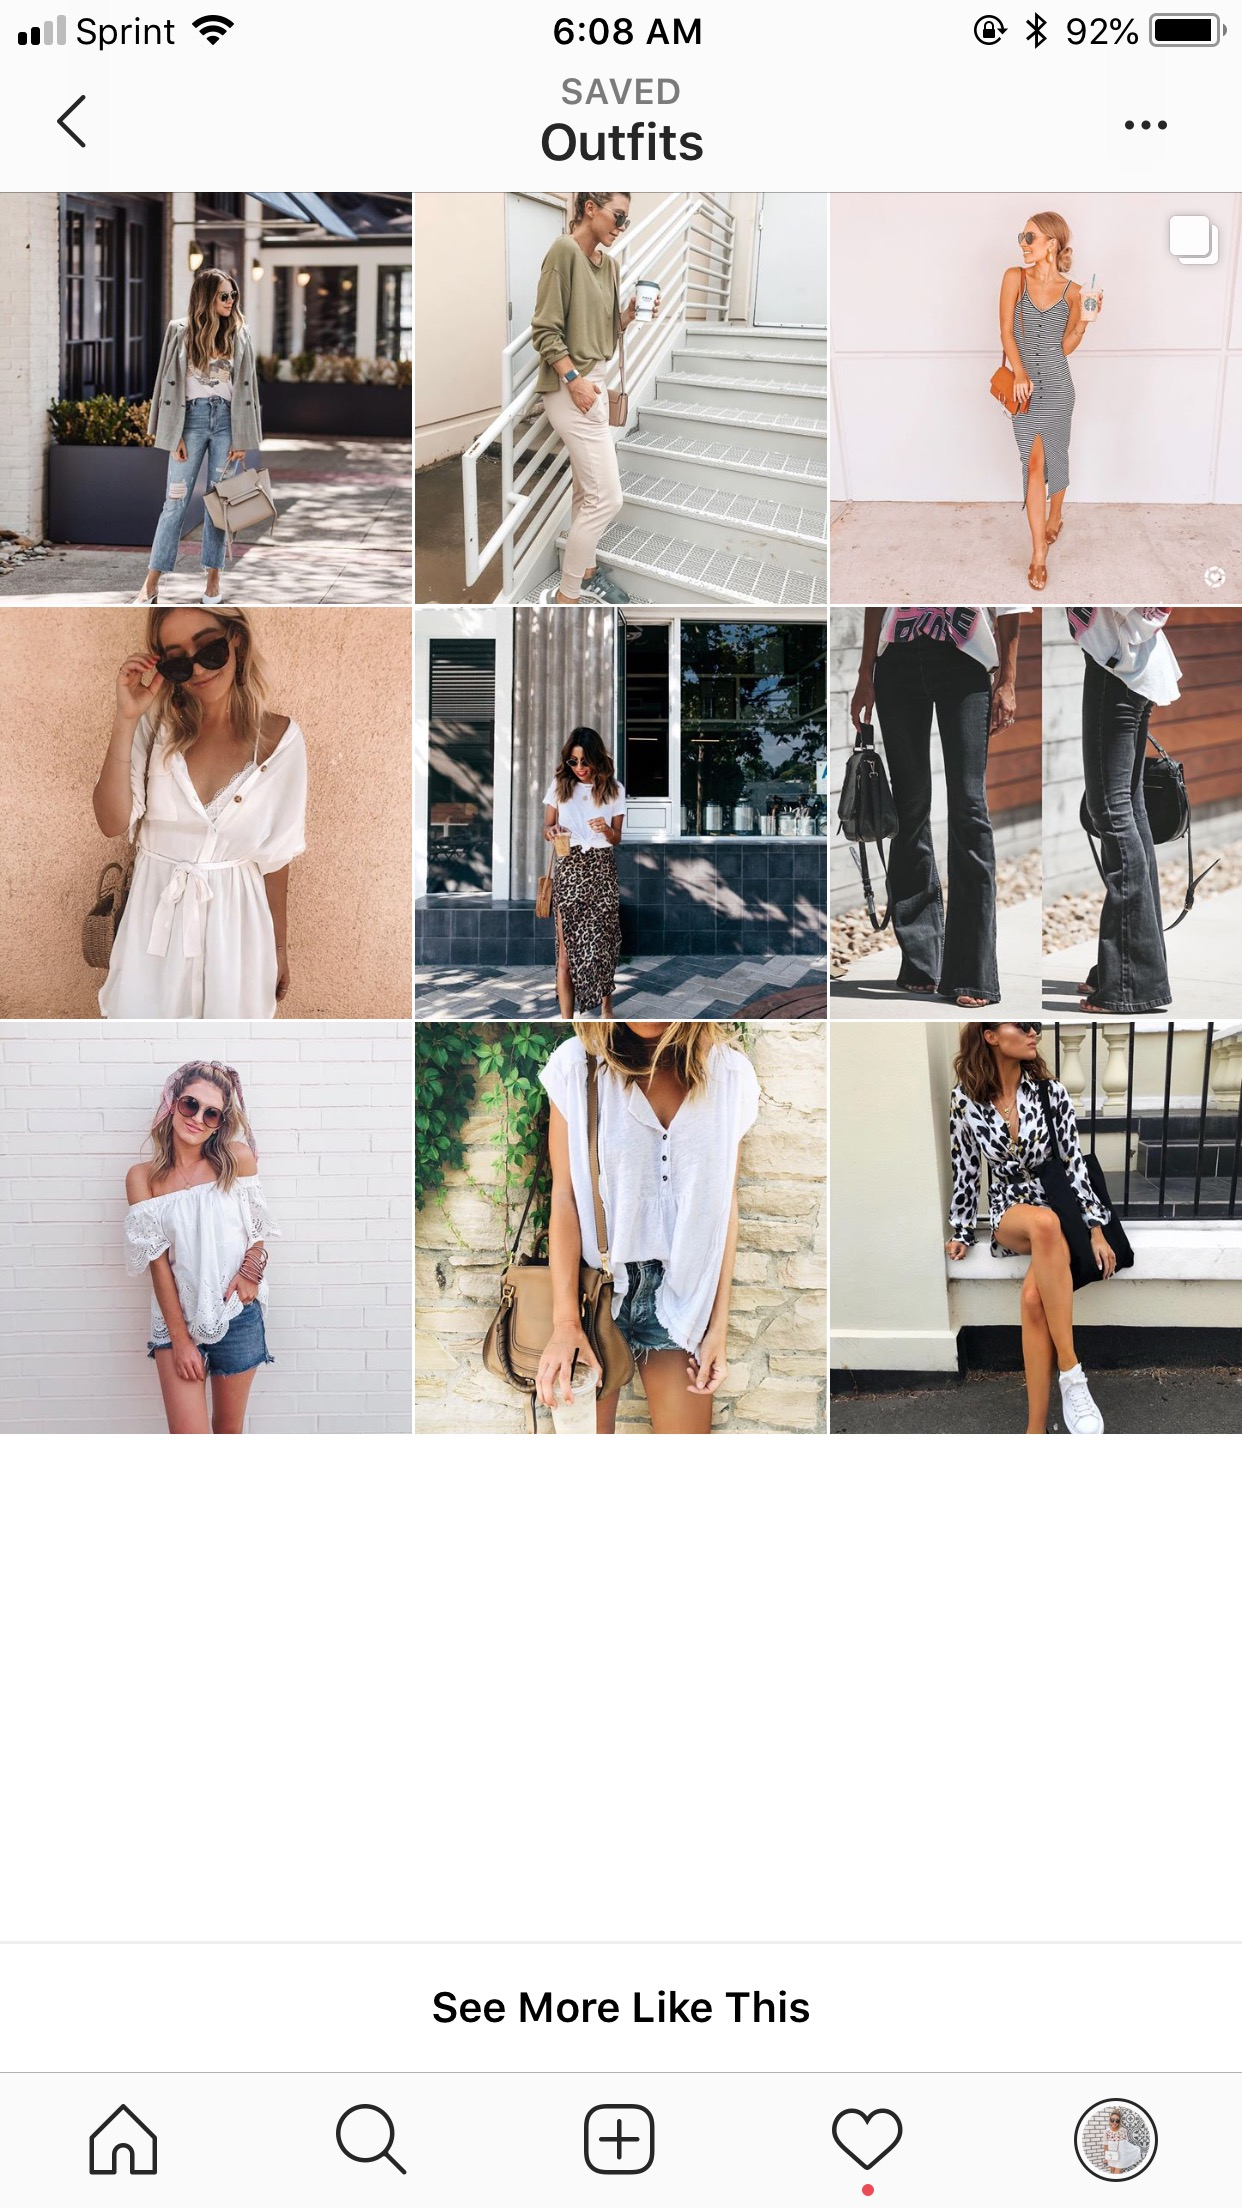 instagram feed- outfits